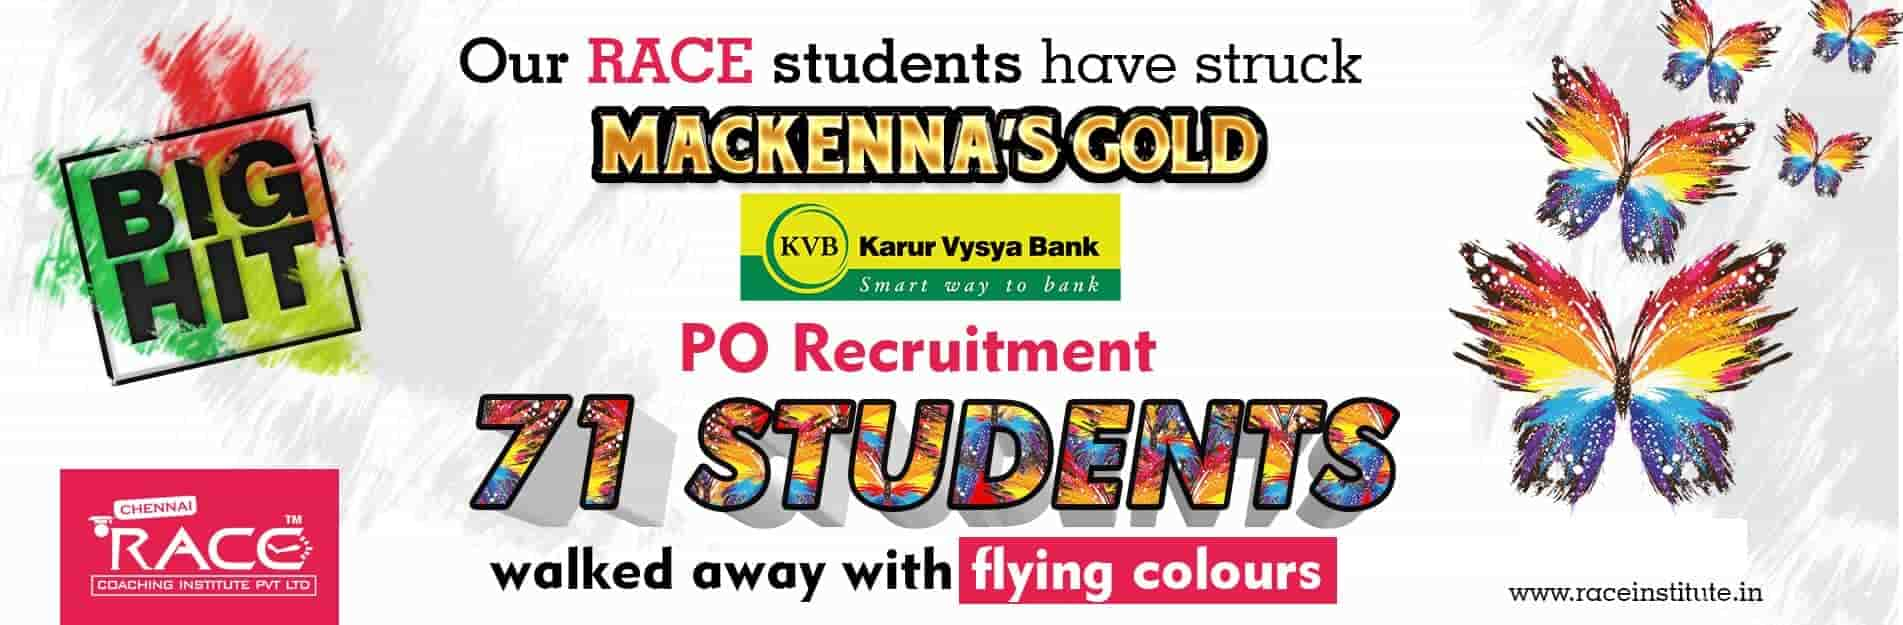 chennai race institute best coaching institute for bank po ssc ibps exams